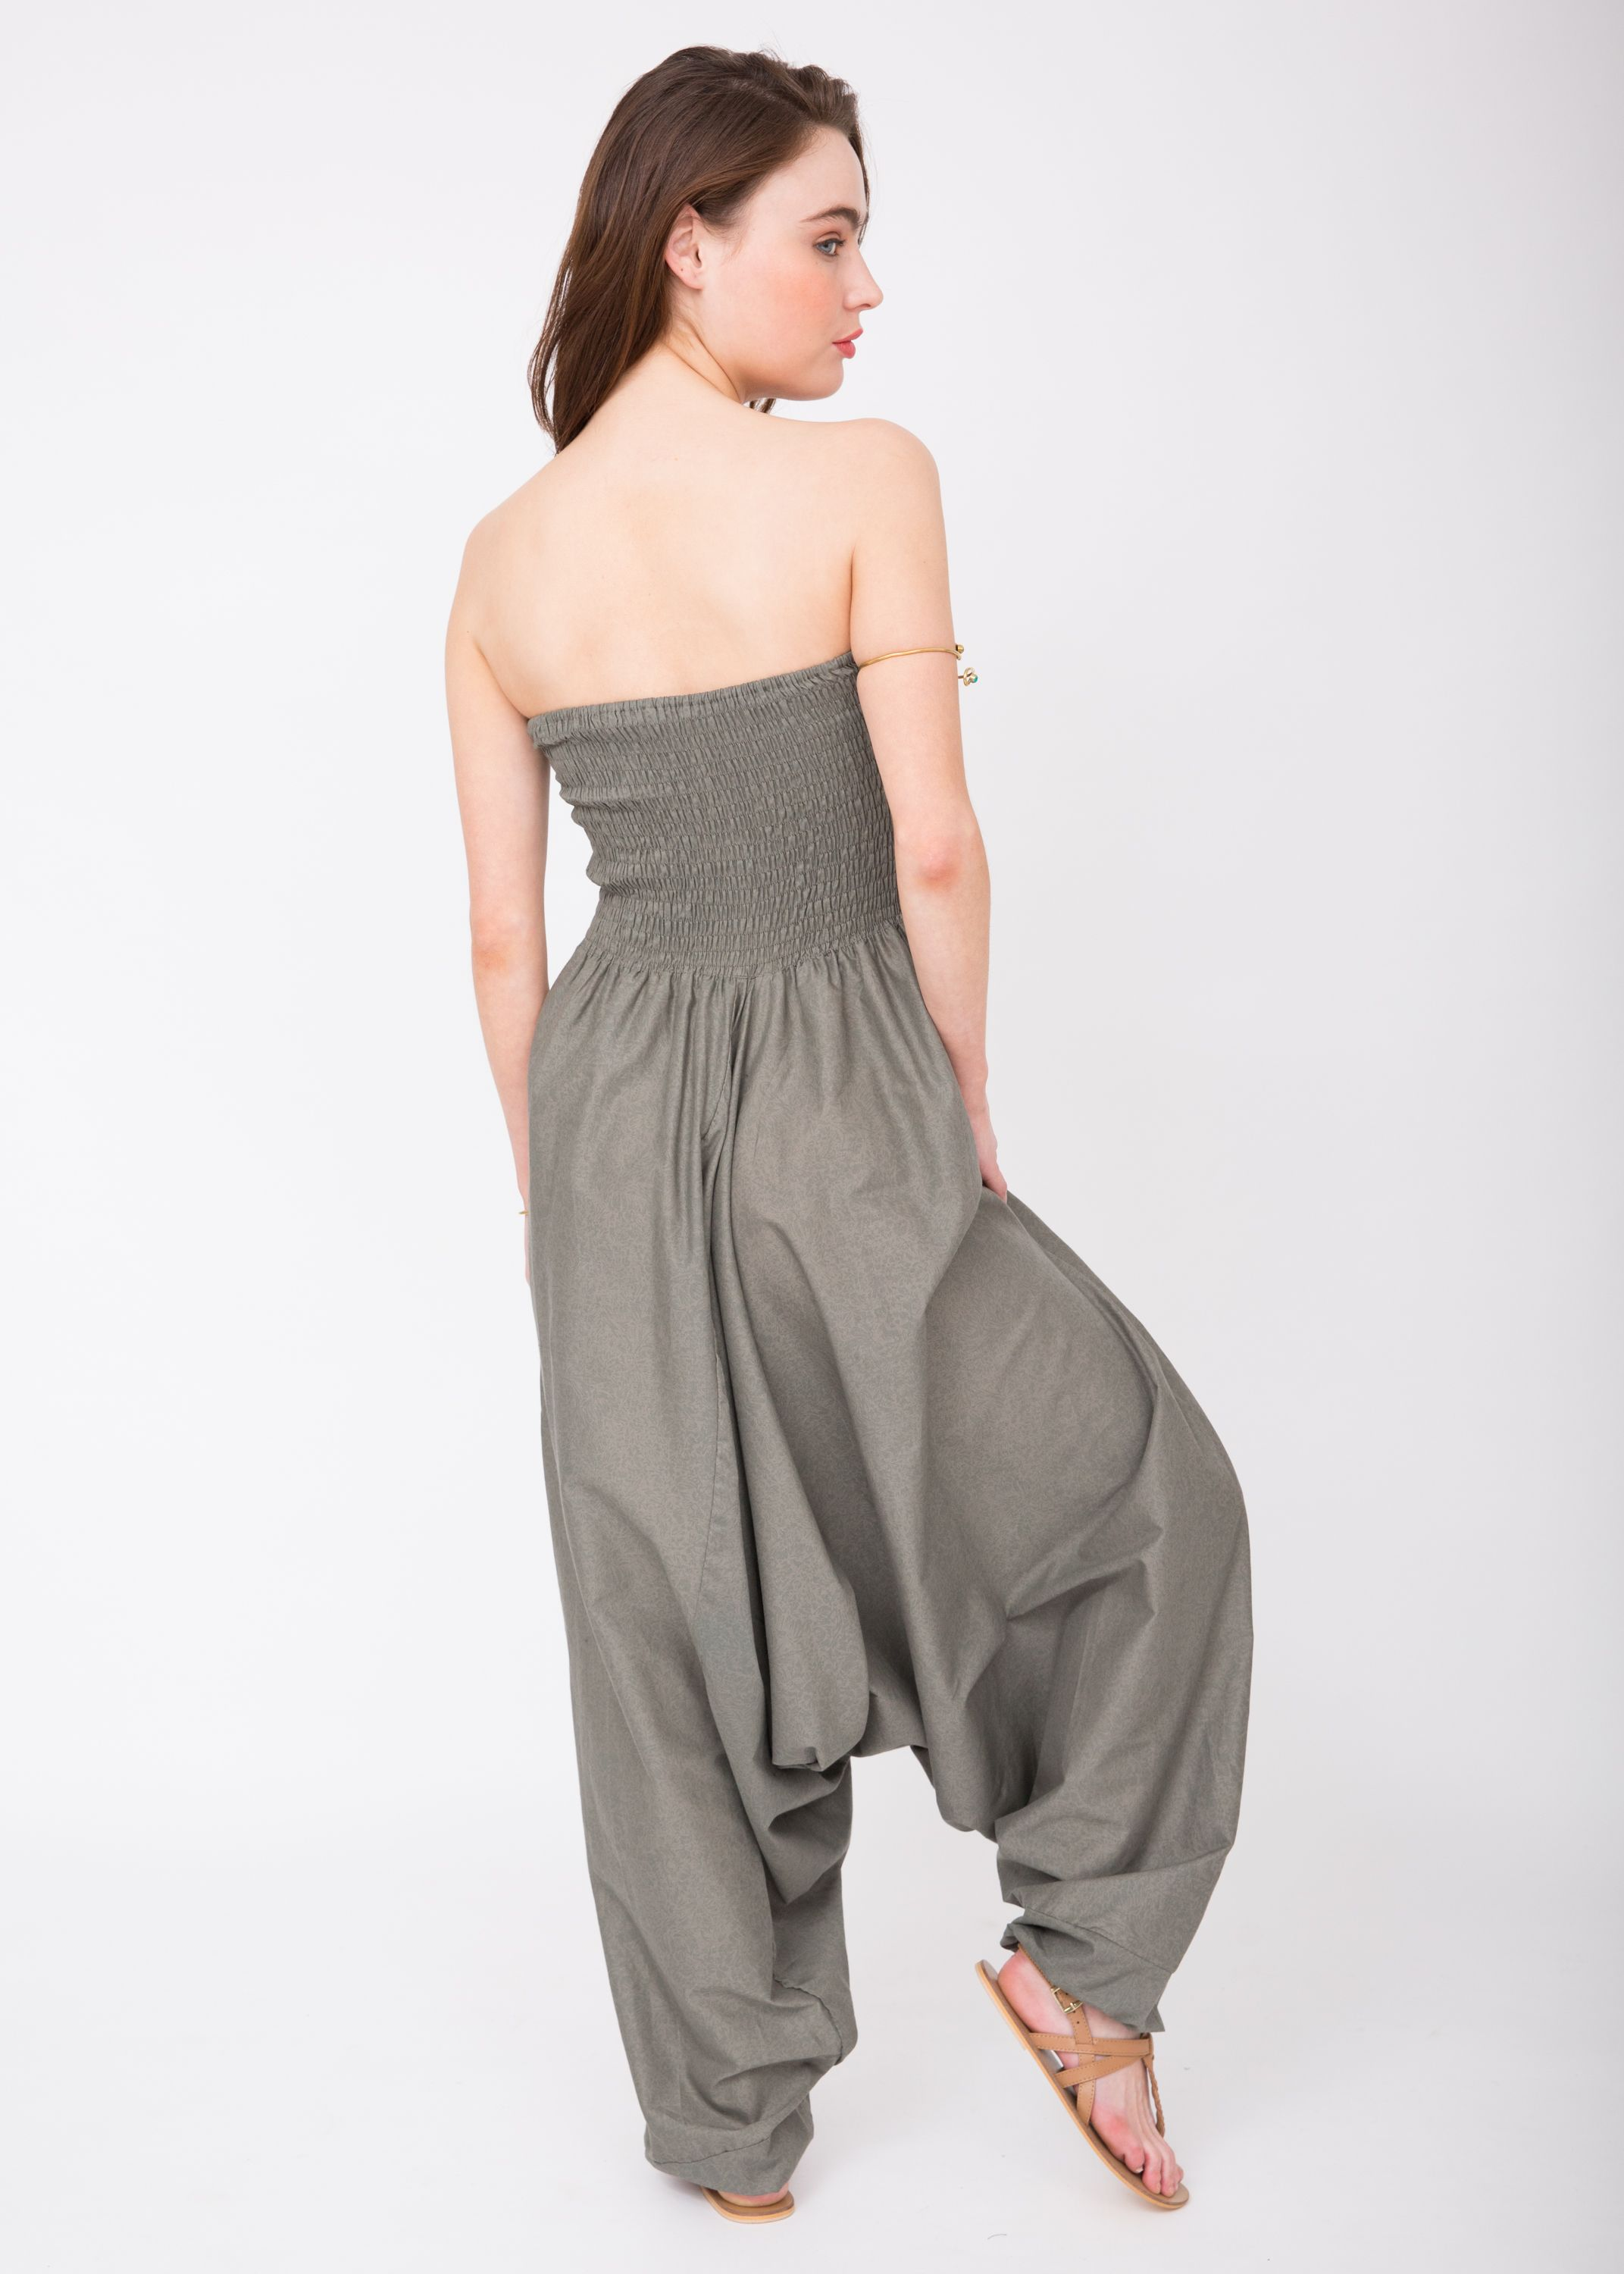 d51355c0fb Cotton Printed Maxi 2 in 1 Harem Trouser Jumpsuit Earth Print – likemary